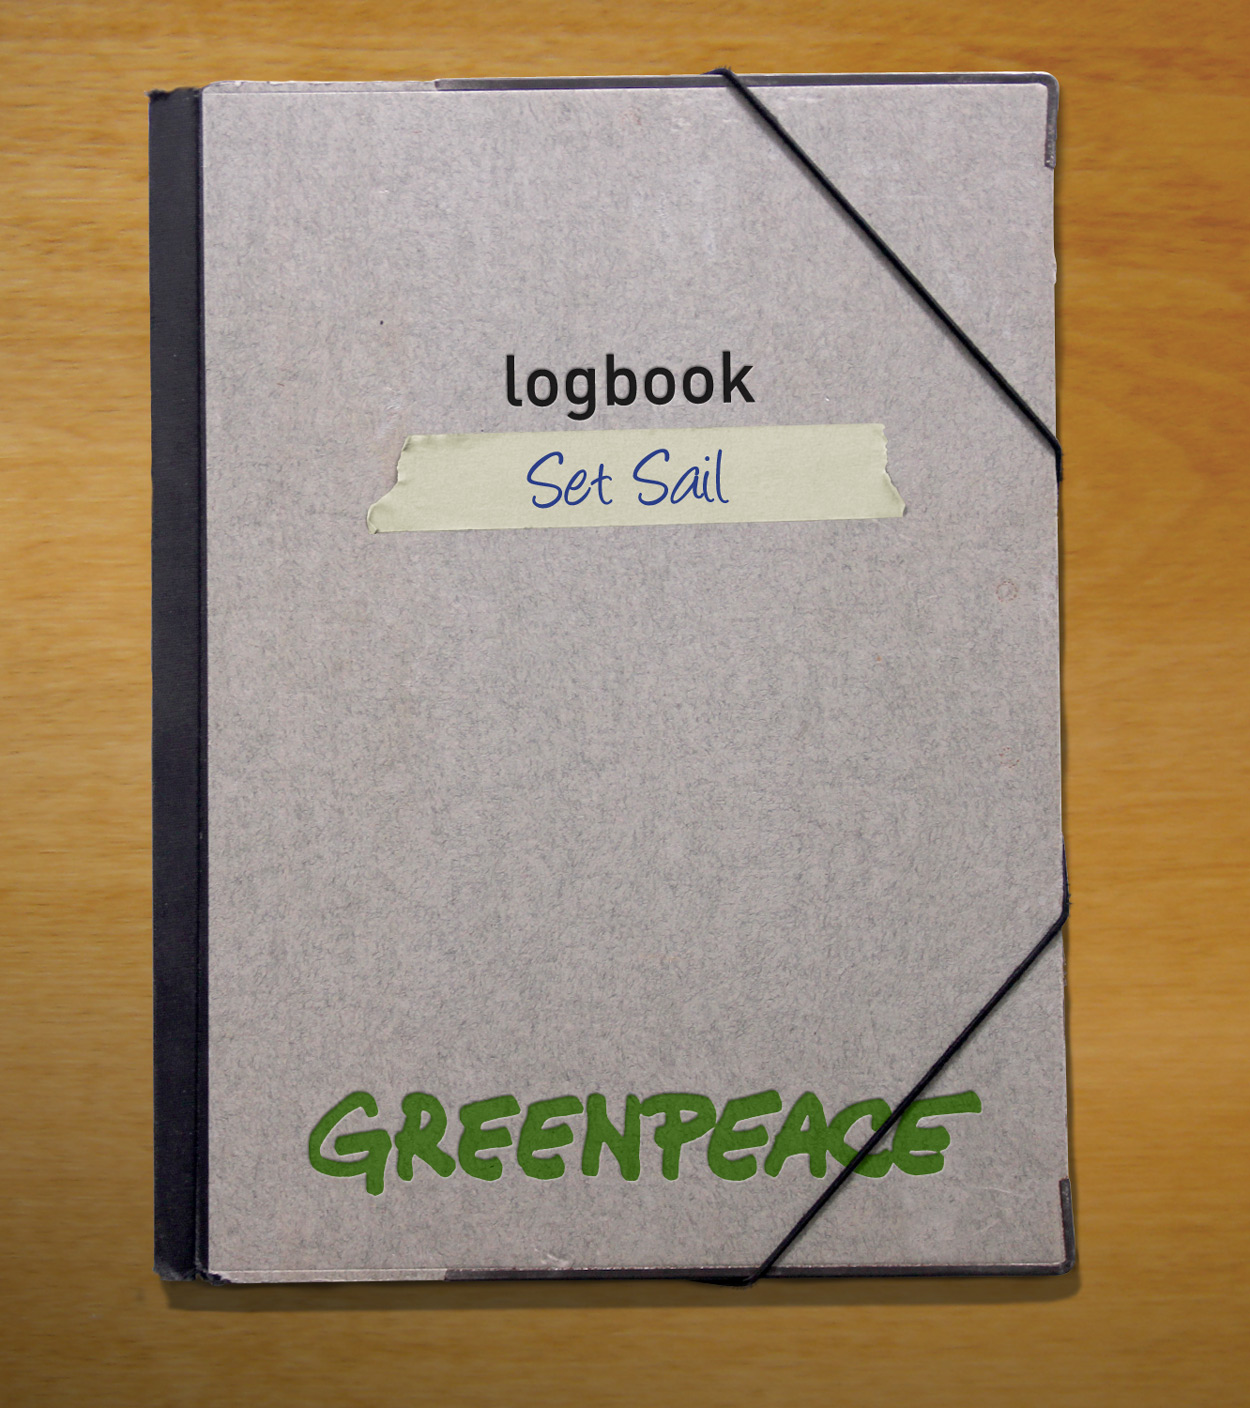 Mission logbook